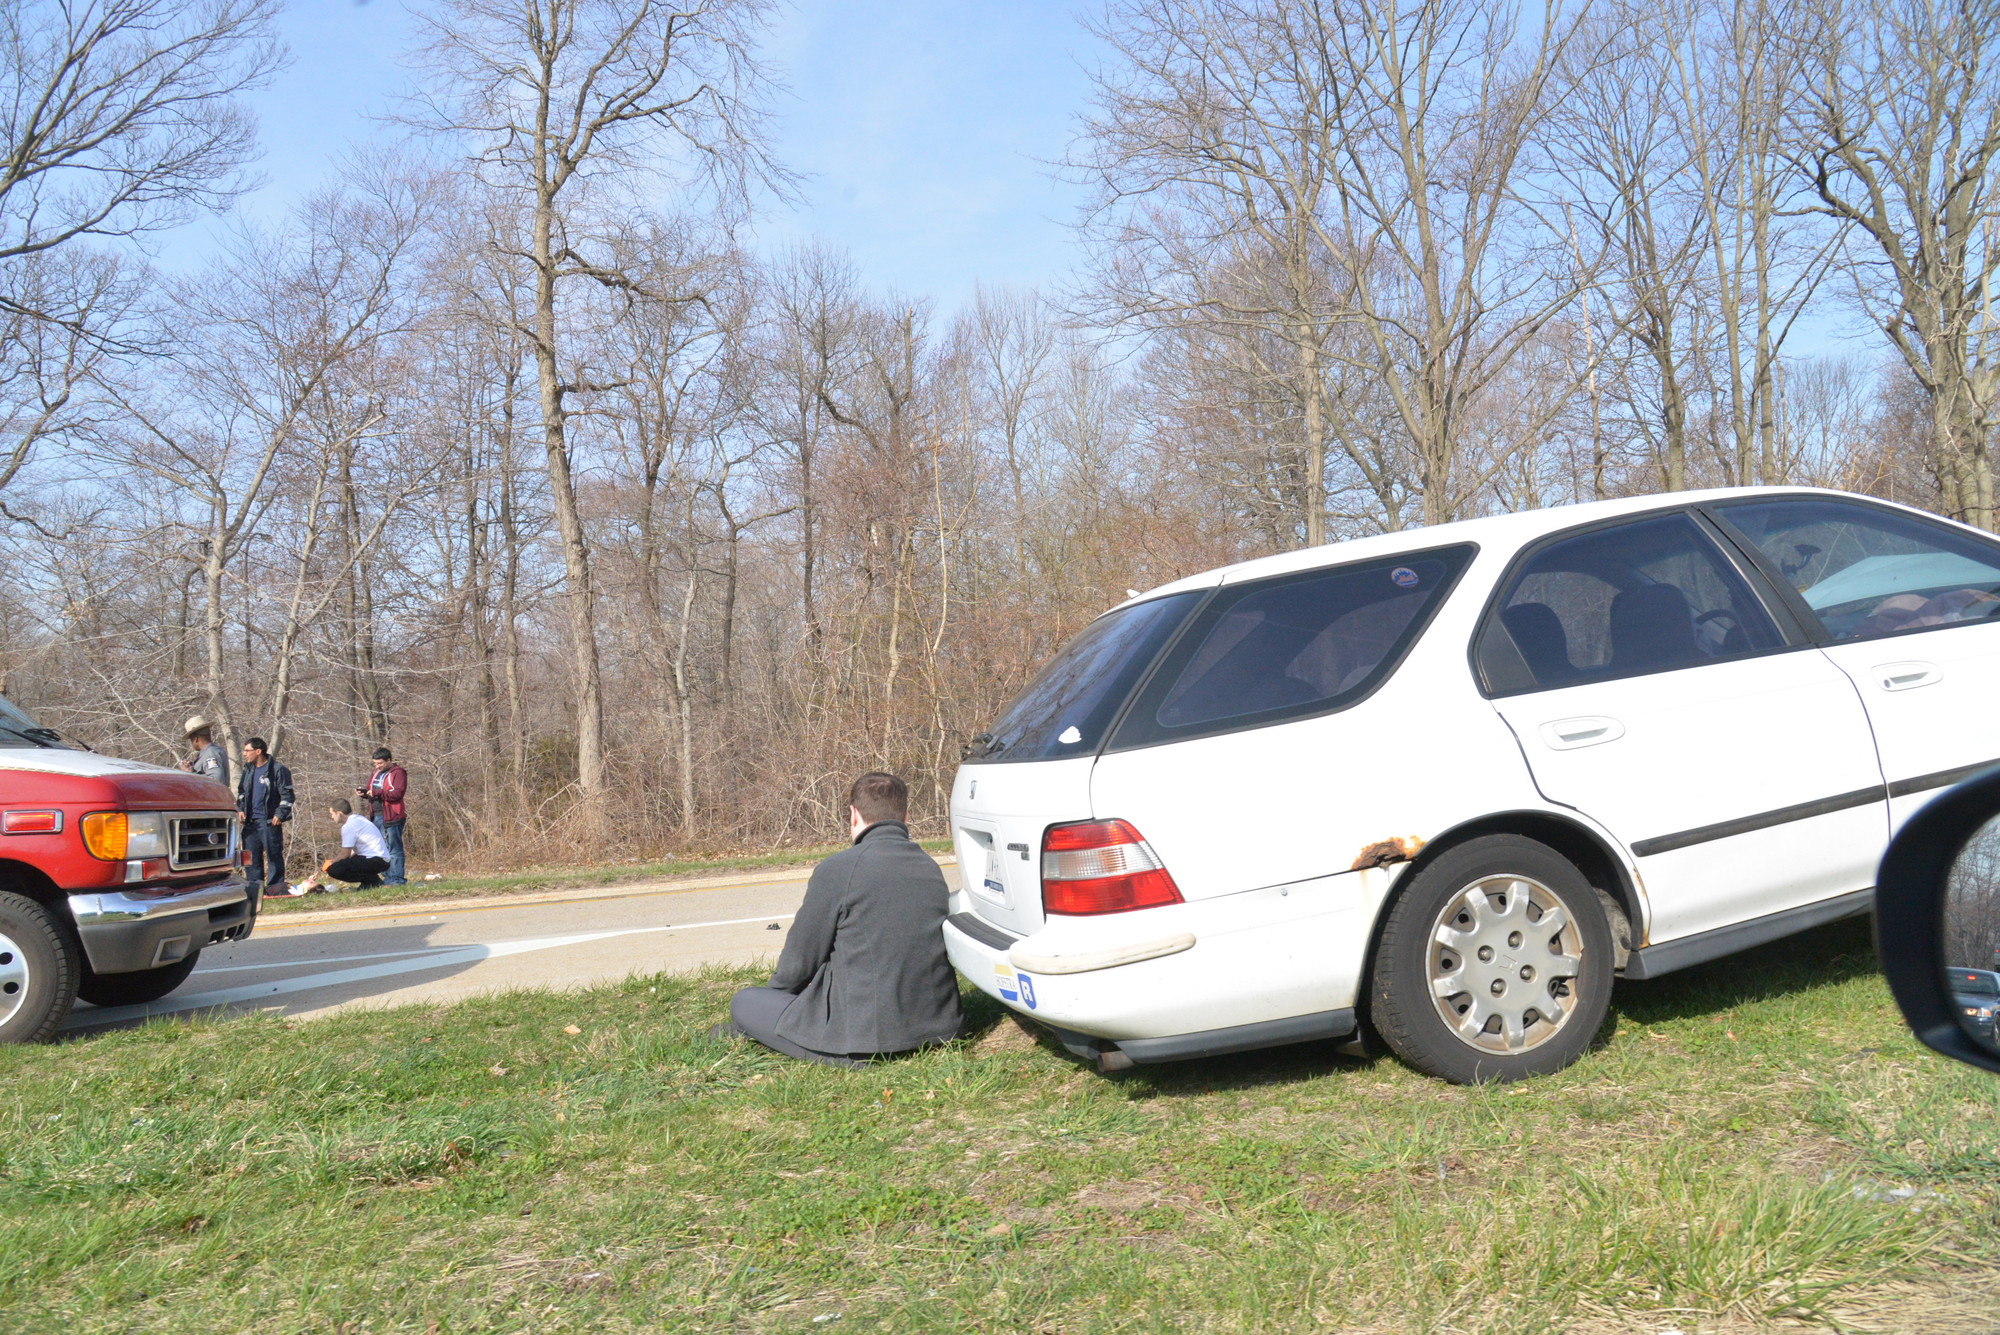 The accident on the Meadowbrook Parkway led one person to be treated for minor injuries.